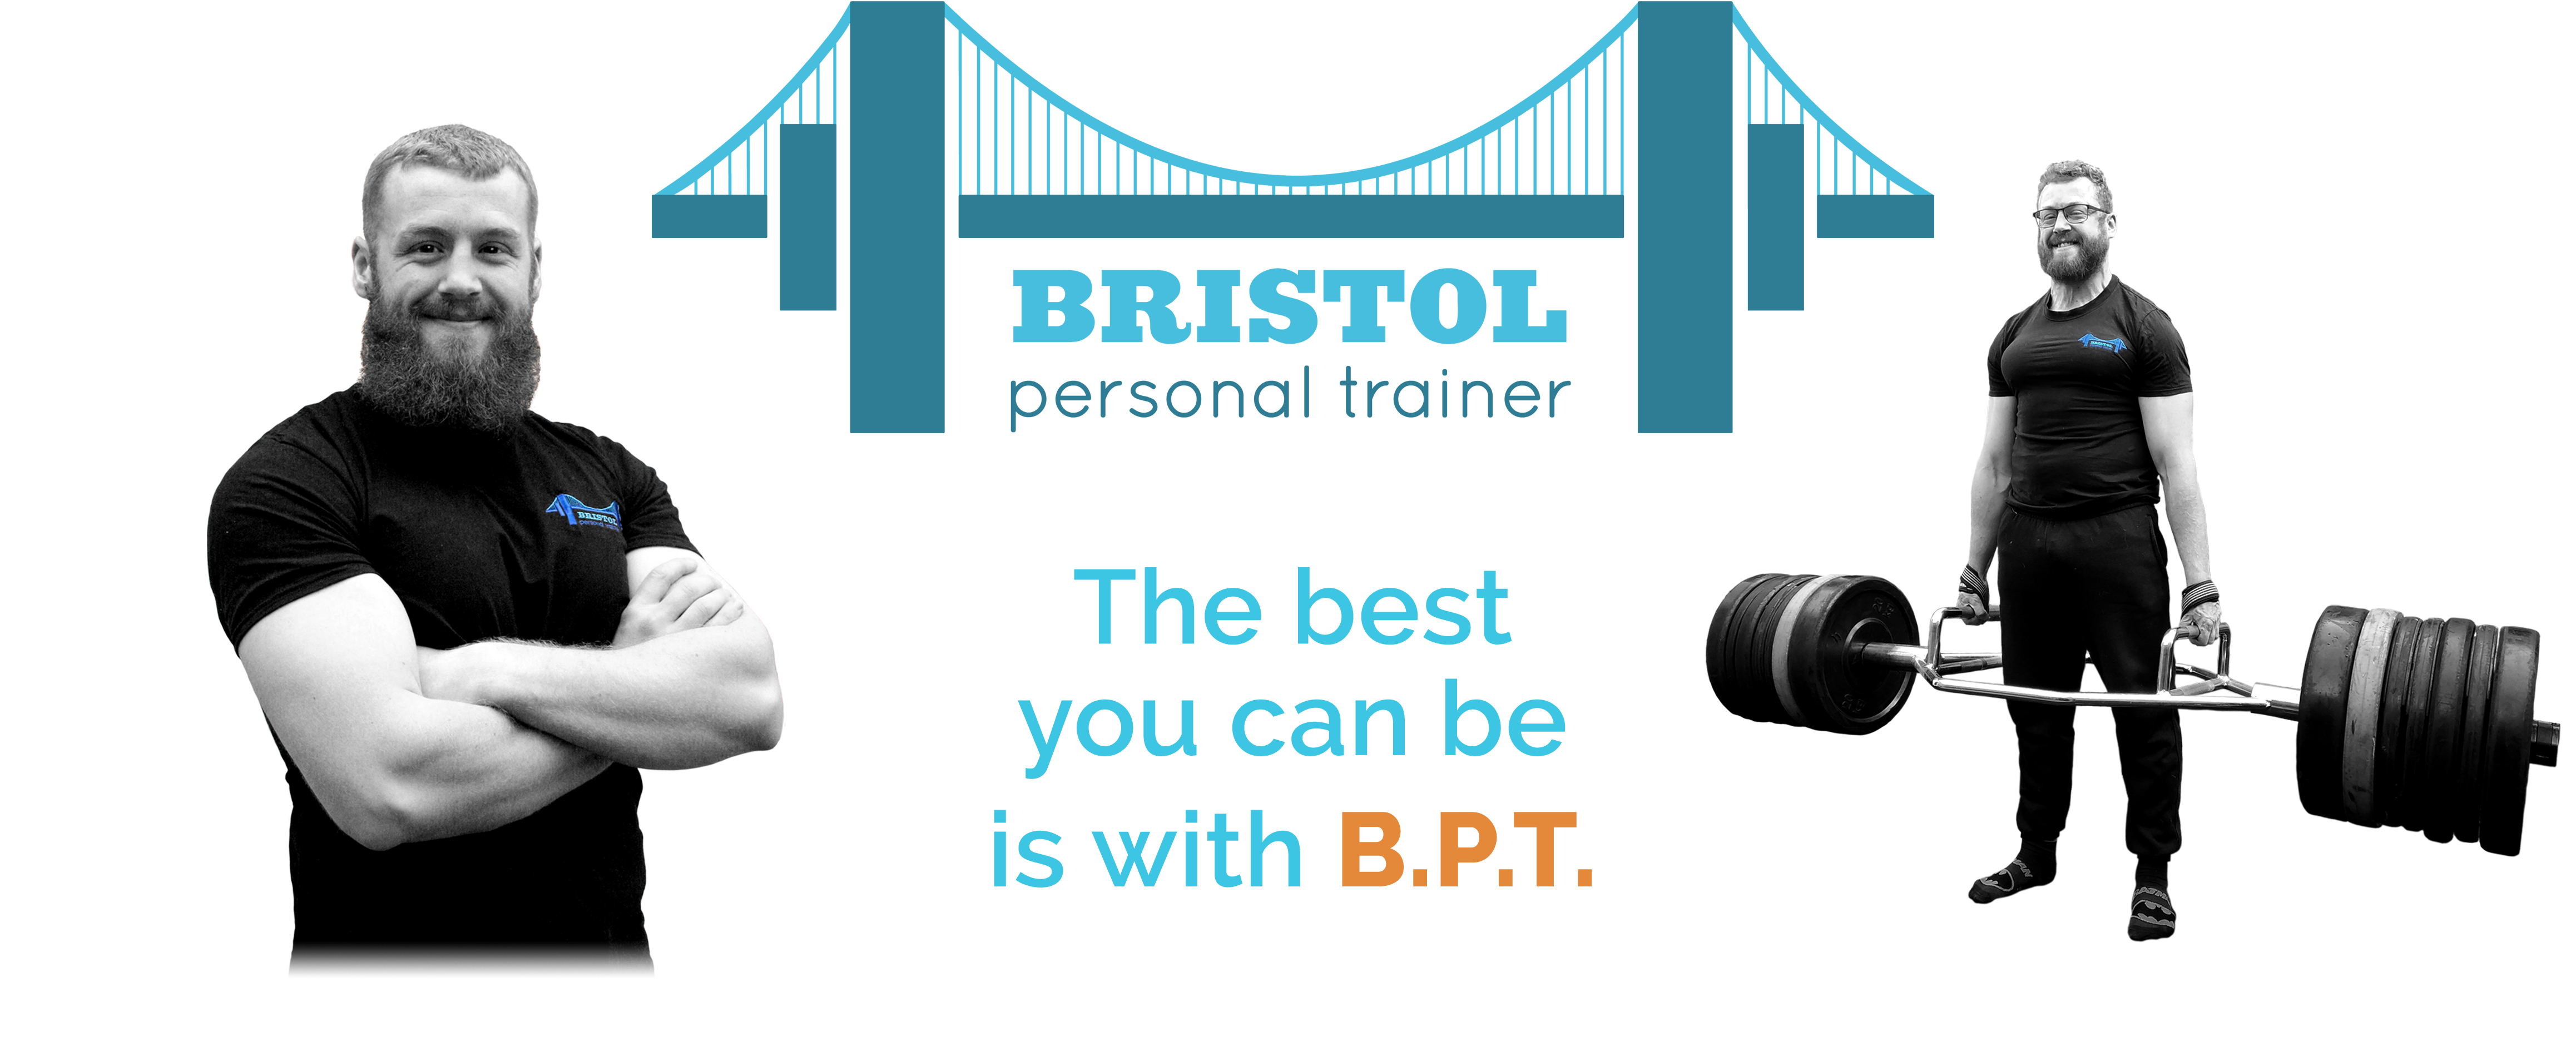 """Image of Bristol Personal Trainer logo with Personal Trainer Henry either side of the logo. Along with the caption """"The best you can be is with B.P.T."""""""